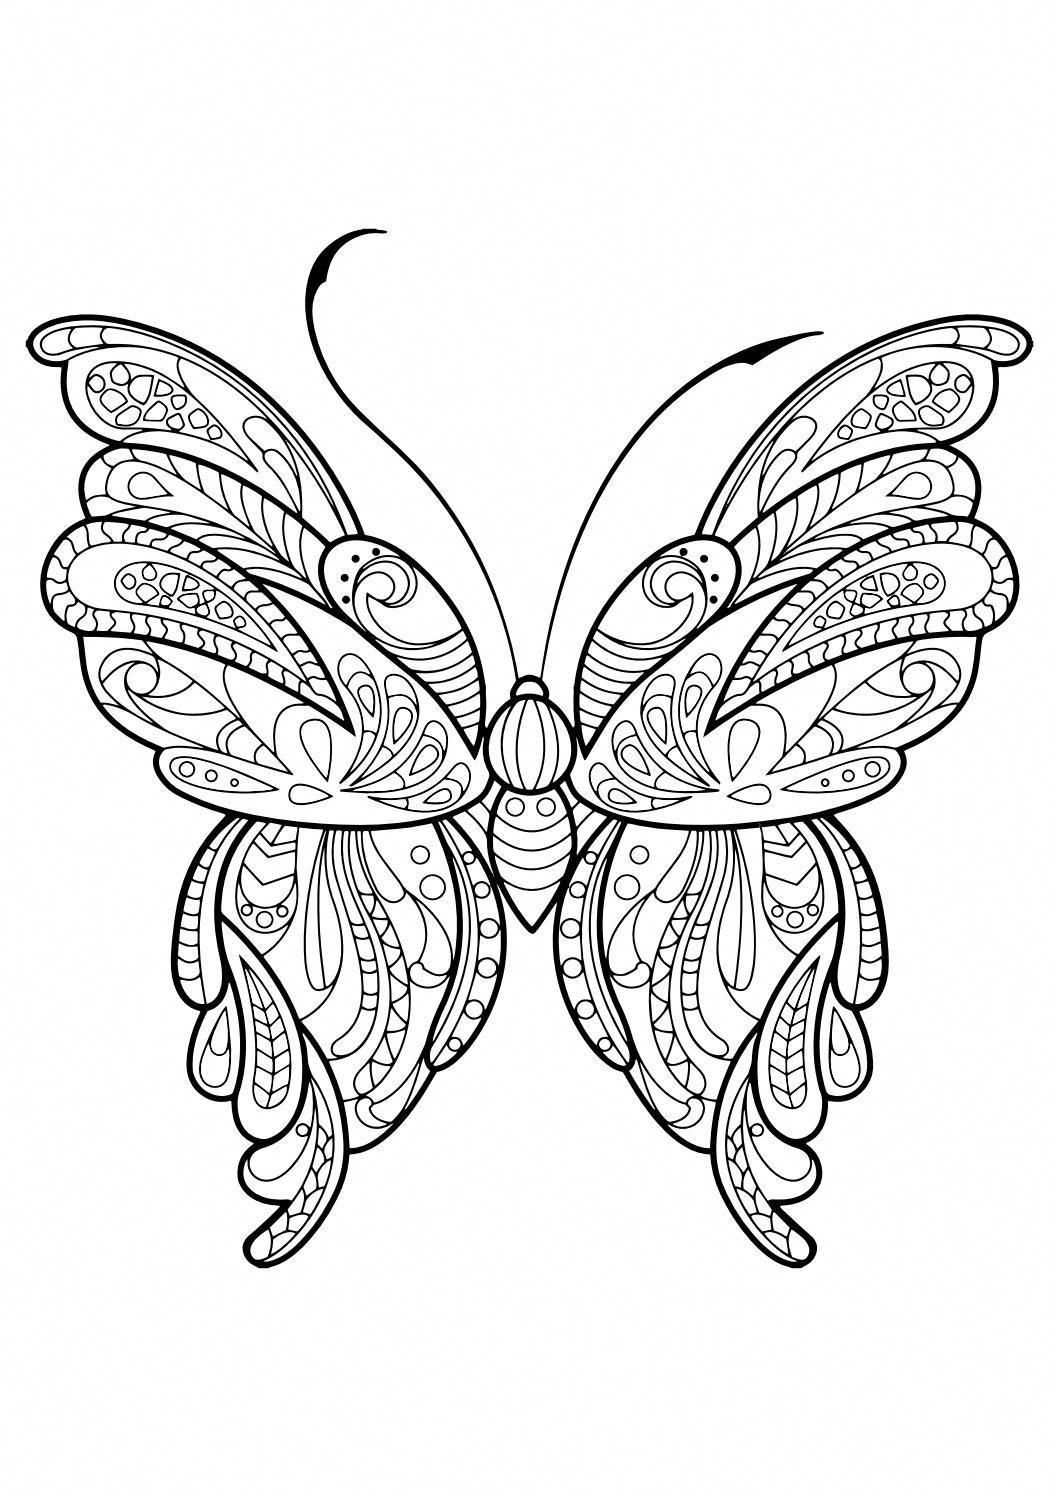 Coloring Page Of Butterfly Youngandtae Com Butterfly Pictures To Color Butterfly Coloring Page Animal Coloring Pages